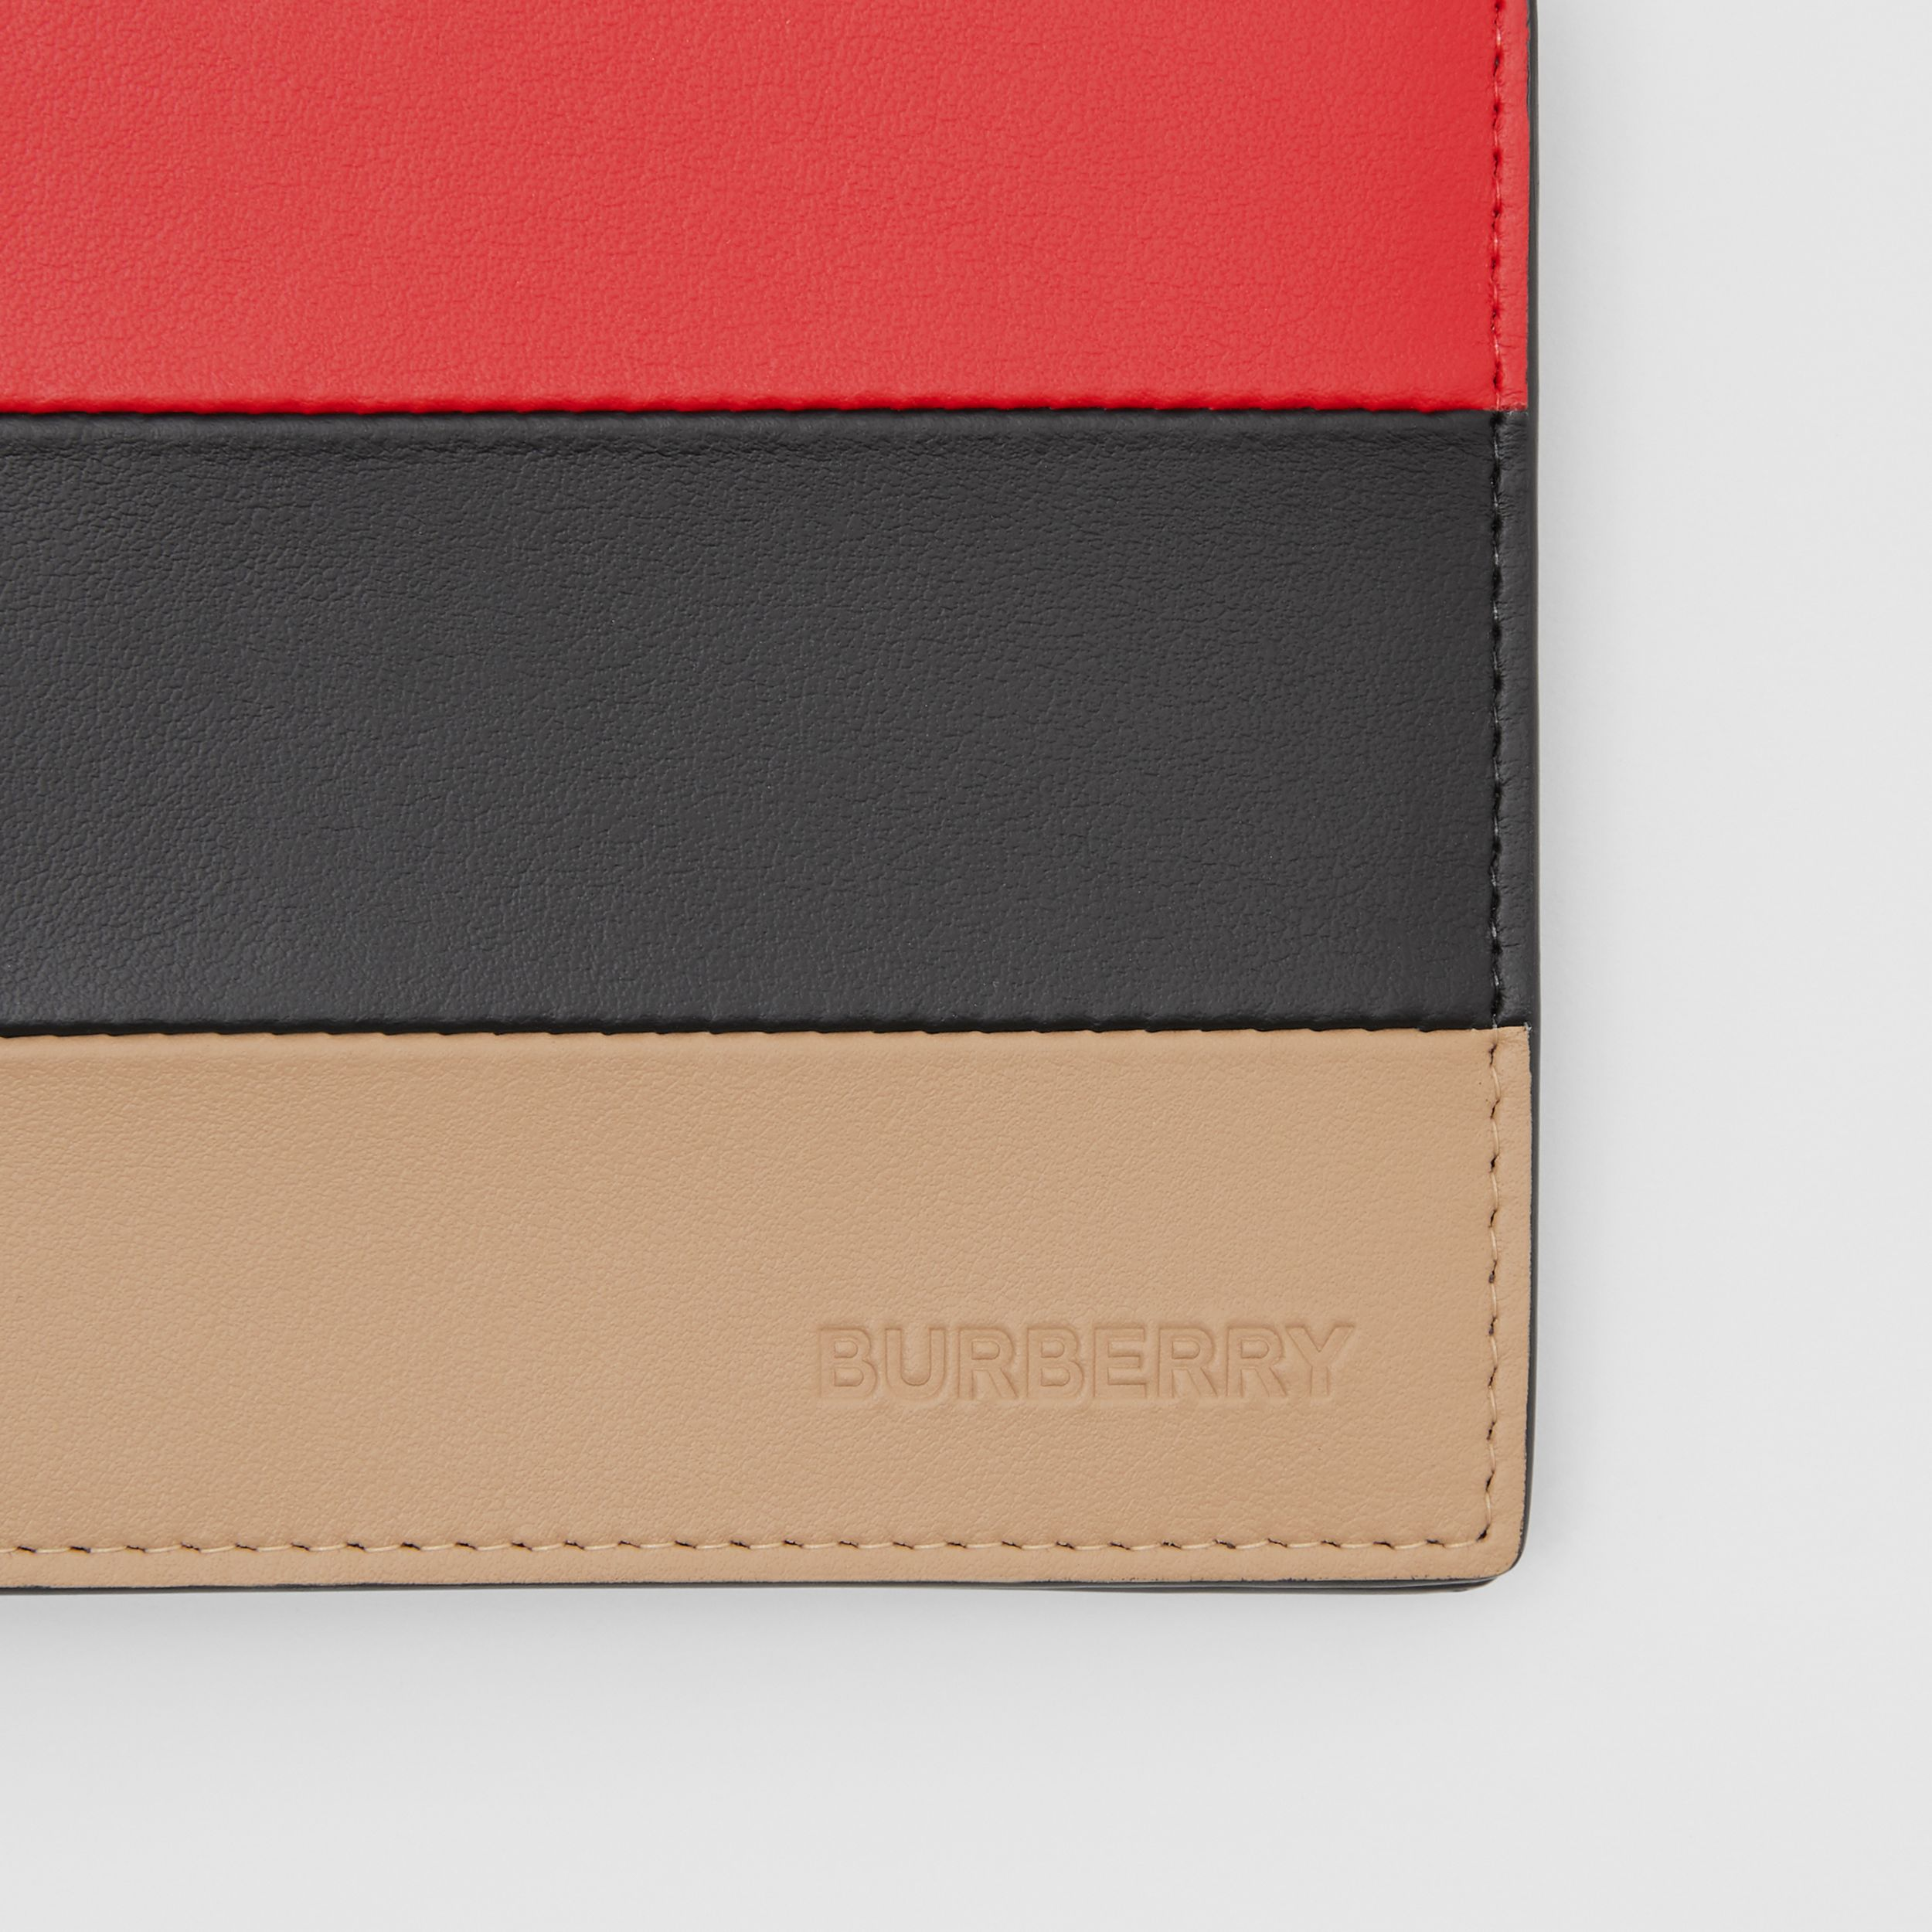 Colour Block Leather International Bifold Wallet in Red/black/beige - Men | Burberry - 2